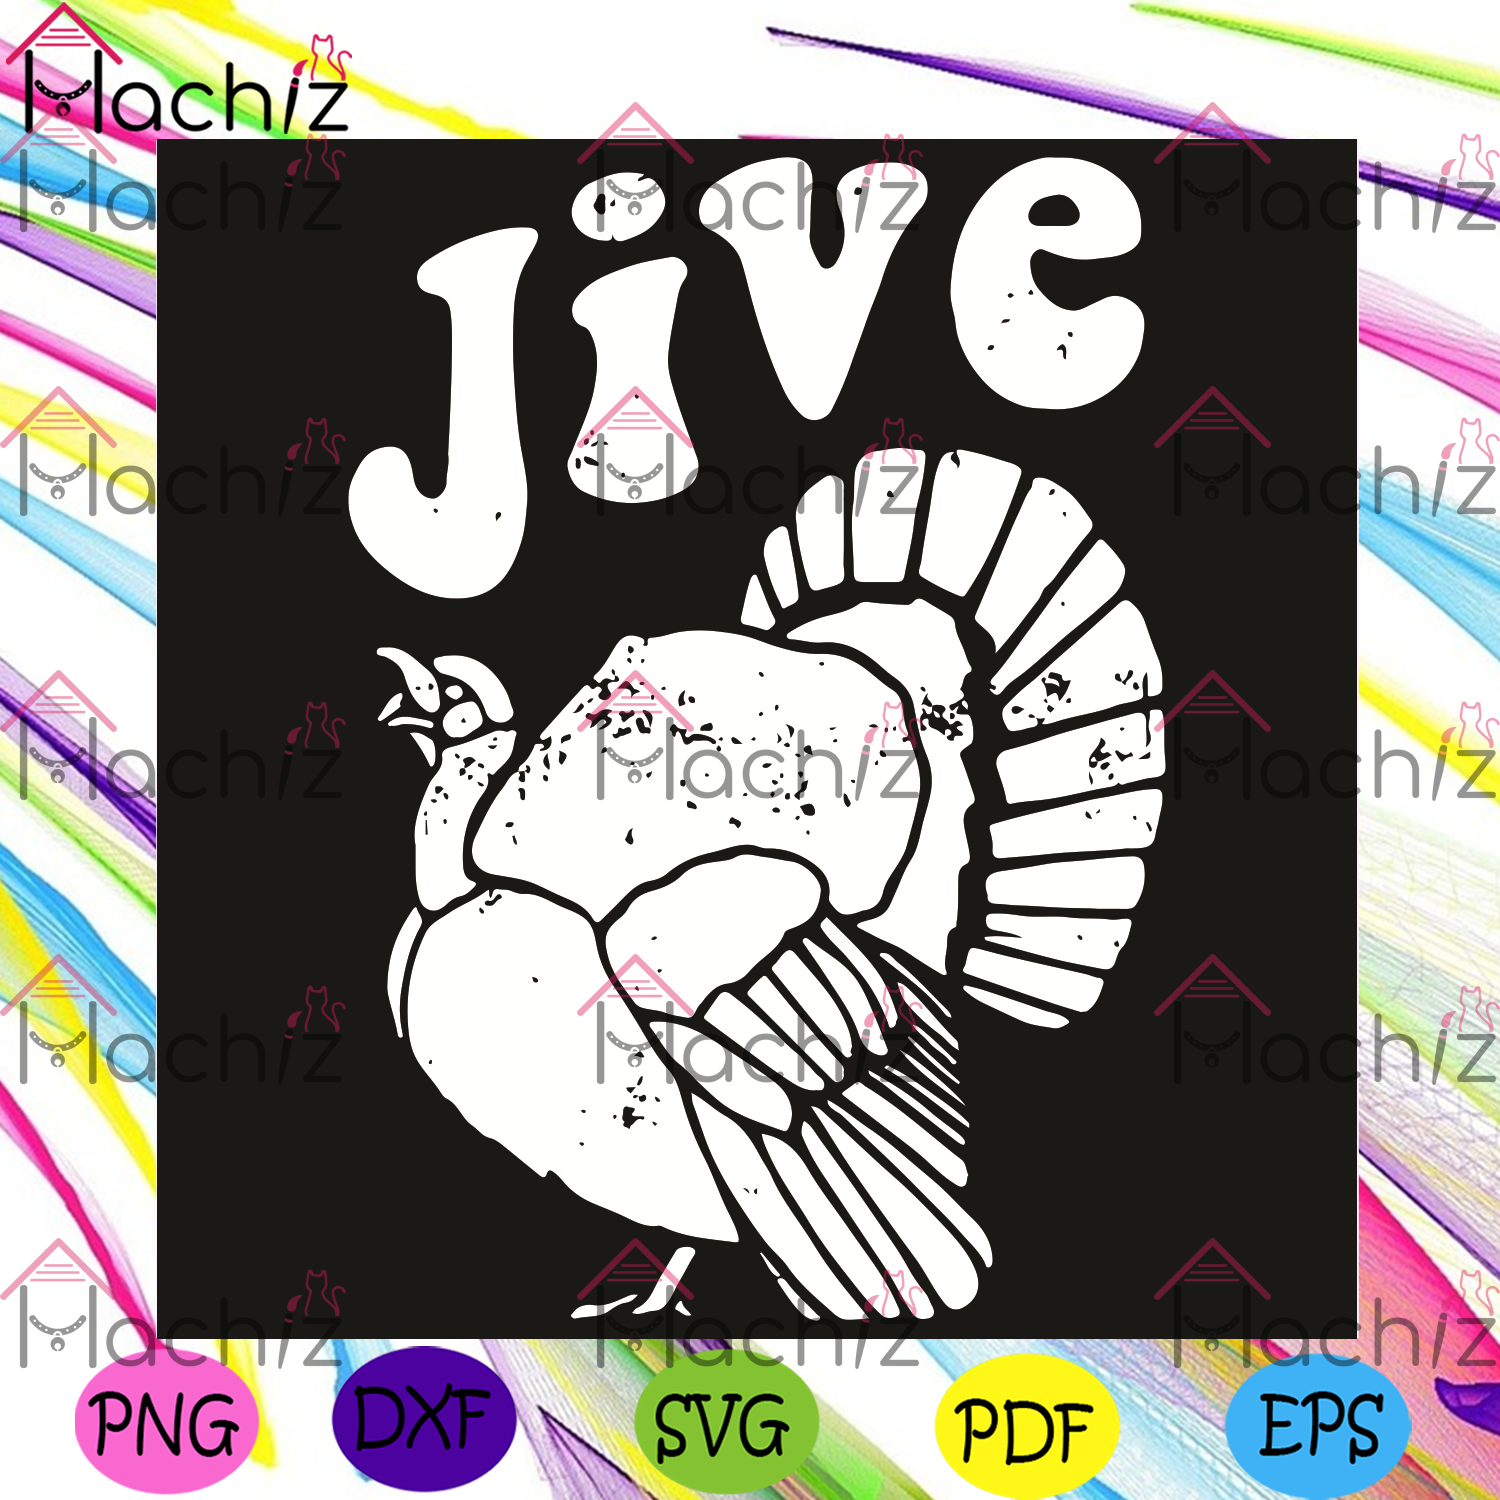 Jive Turkey Svg, Thanksgiving Svg, Jive Turkey Svg, Turkey Svg, Cute Turkey Svg, Turkey Thanksgiving Svg, Thanksgiving Gift, Thanksgiving Shirt, Turkey Gift, Funny Gift, Svg Cricut, Silhouette Svg Files, Cricut Svg